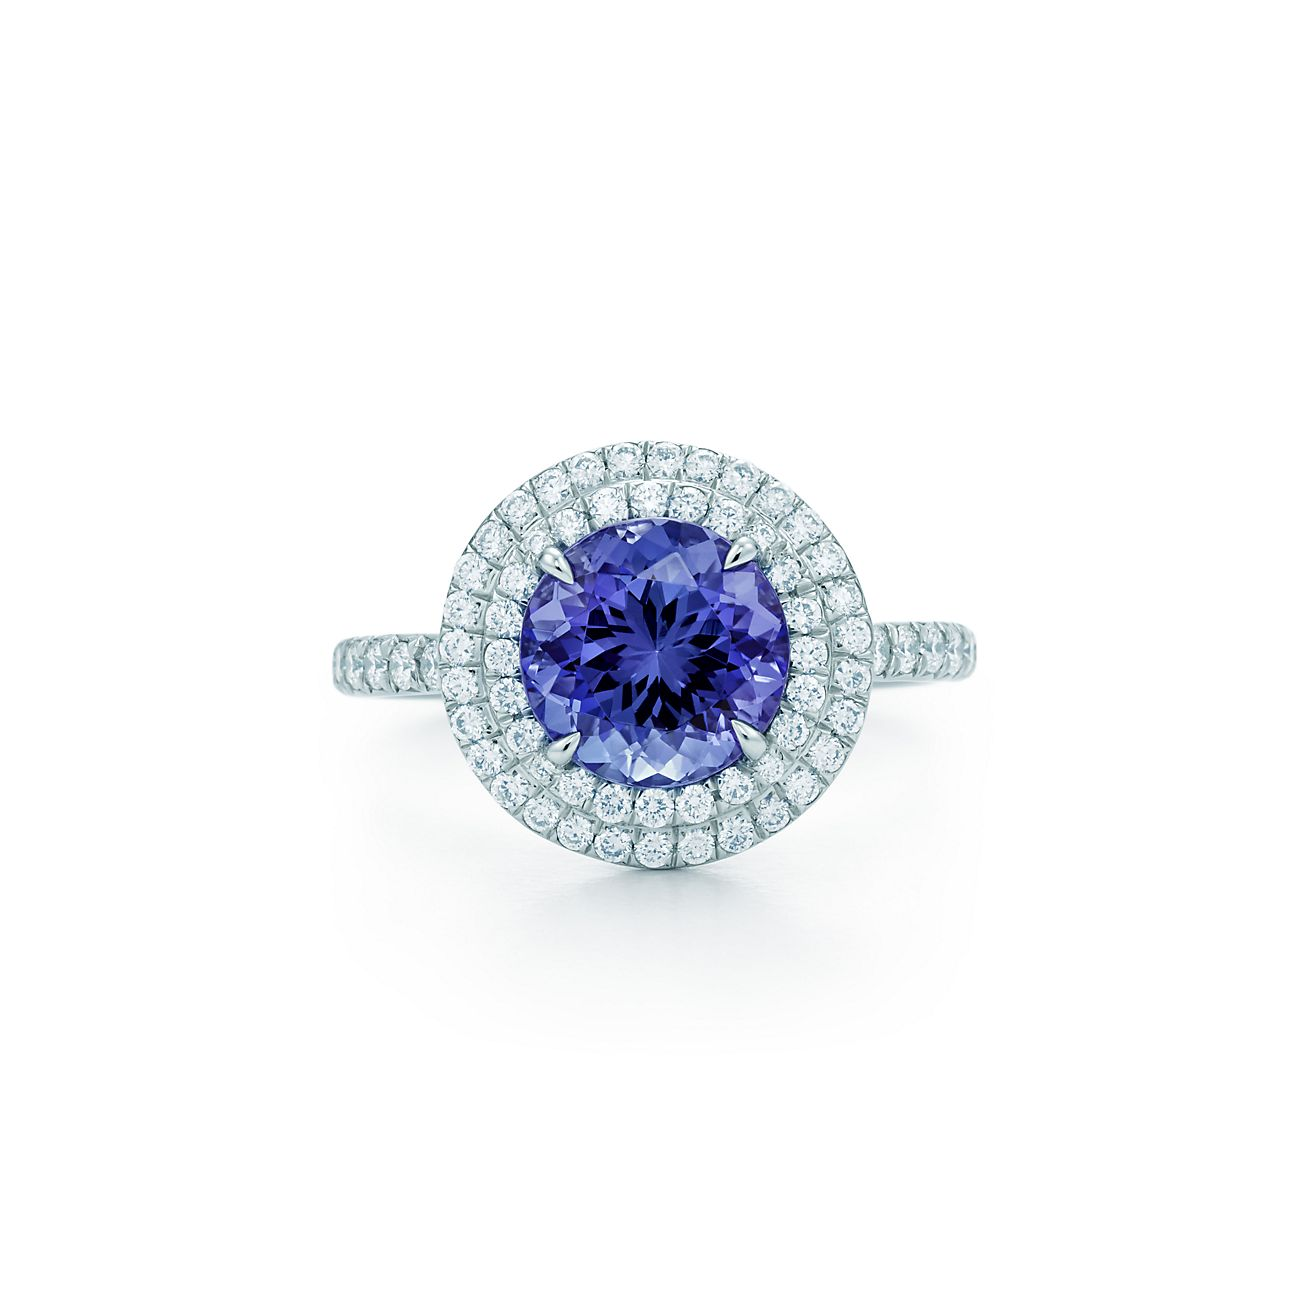 7adc33281 Tiffany Soleste Platinum And Tanzanite Diamond Earrings - Best All ...